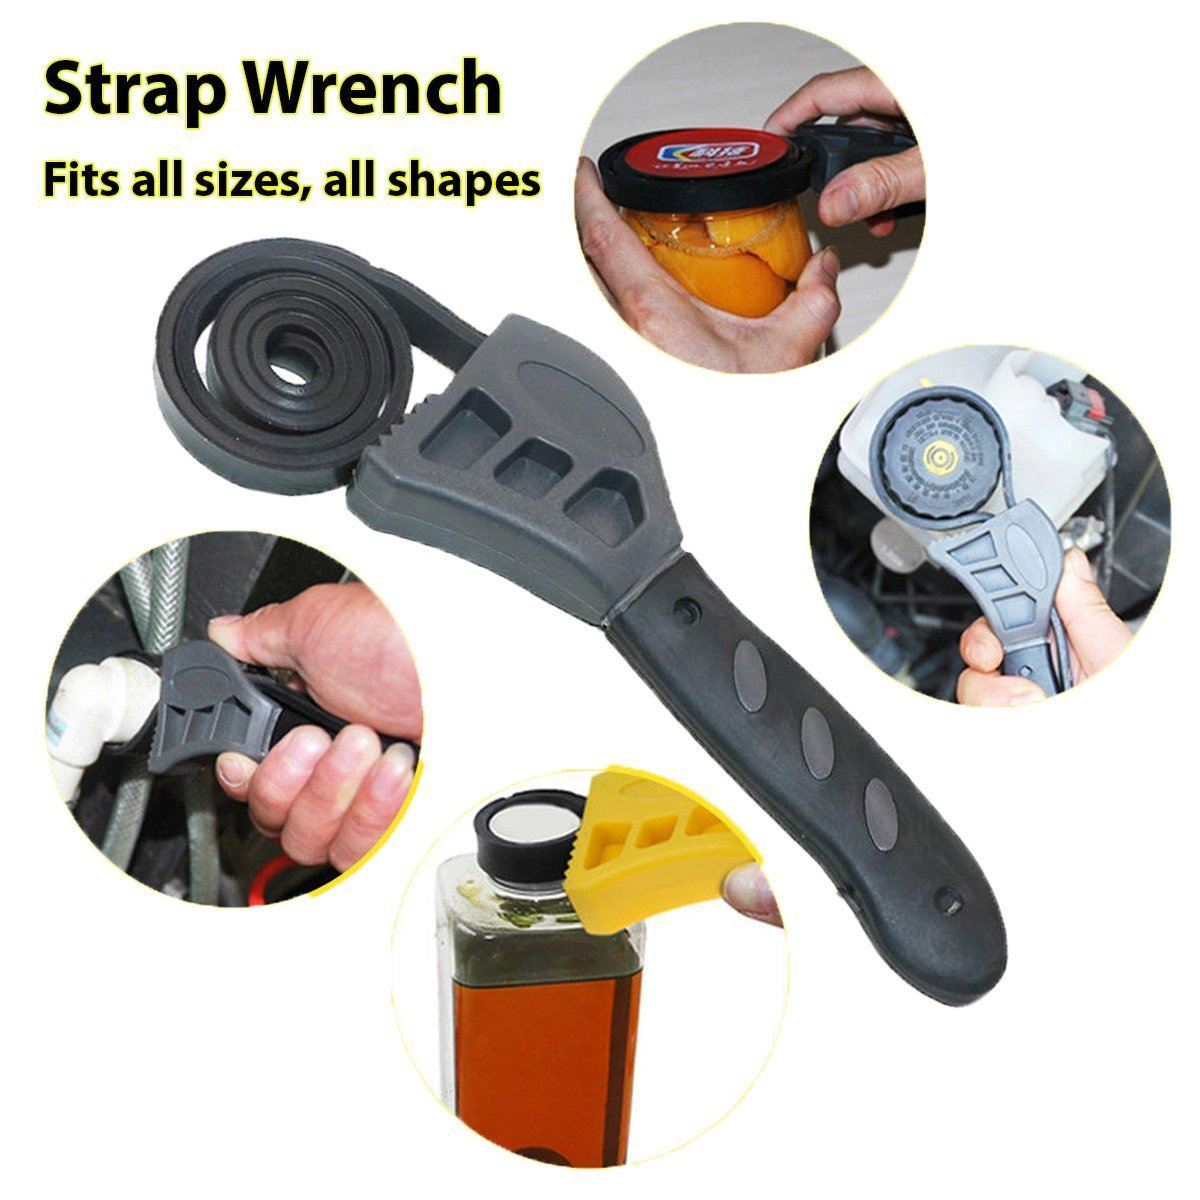 Universal Strap Wrench